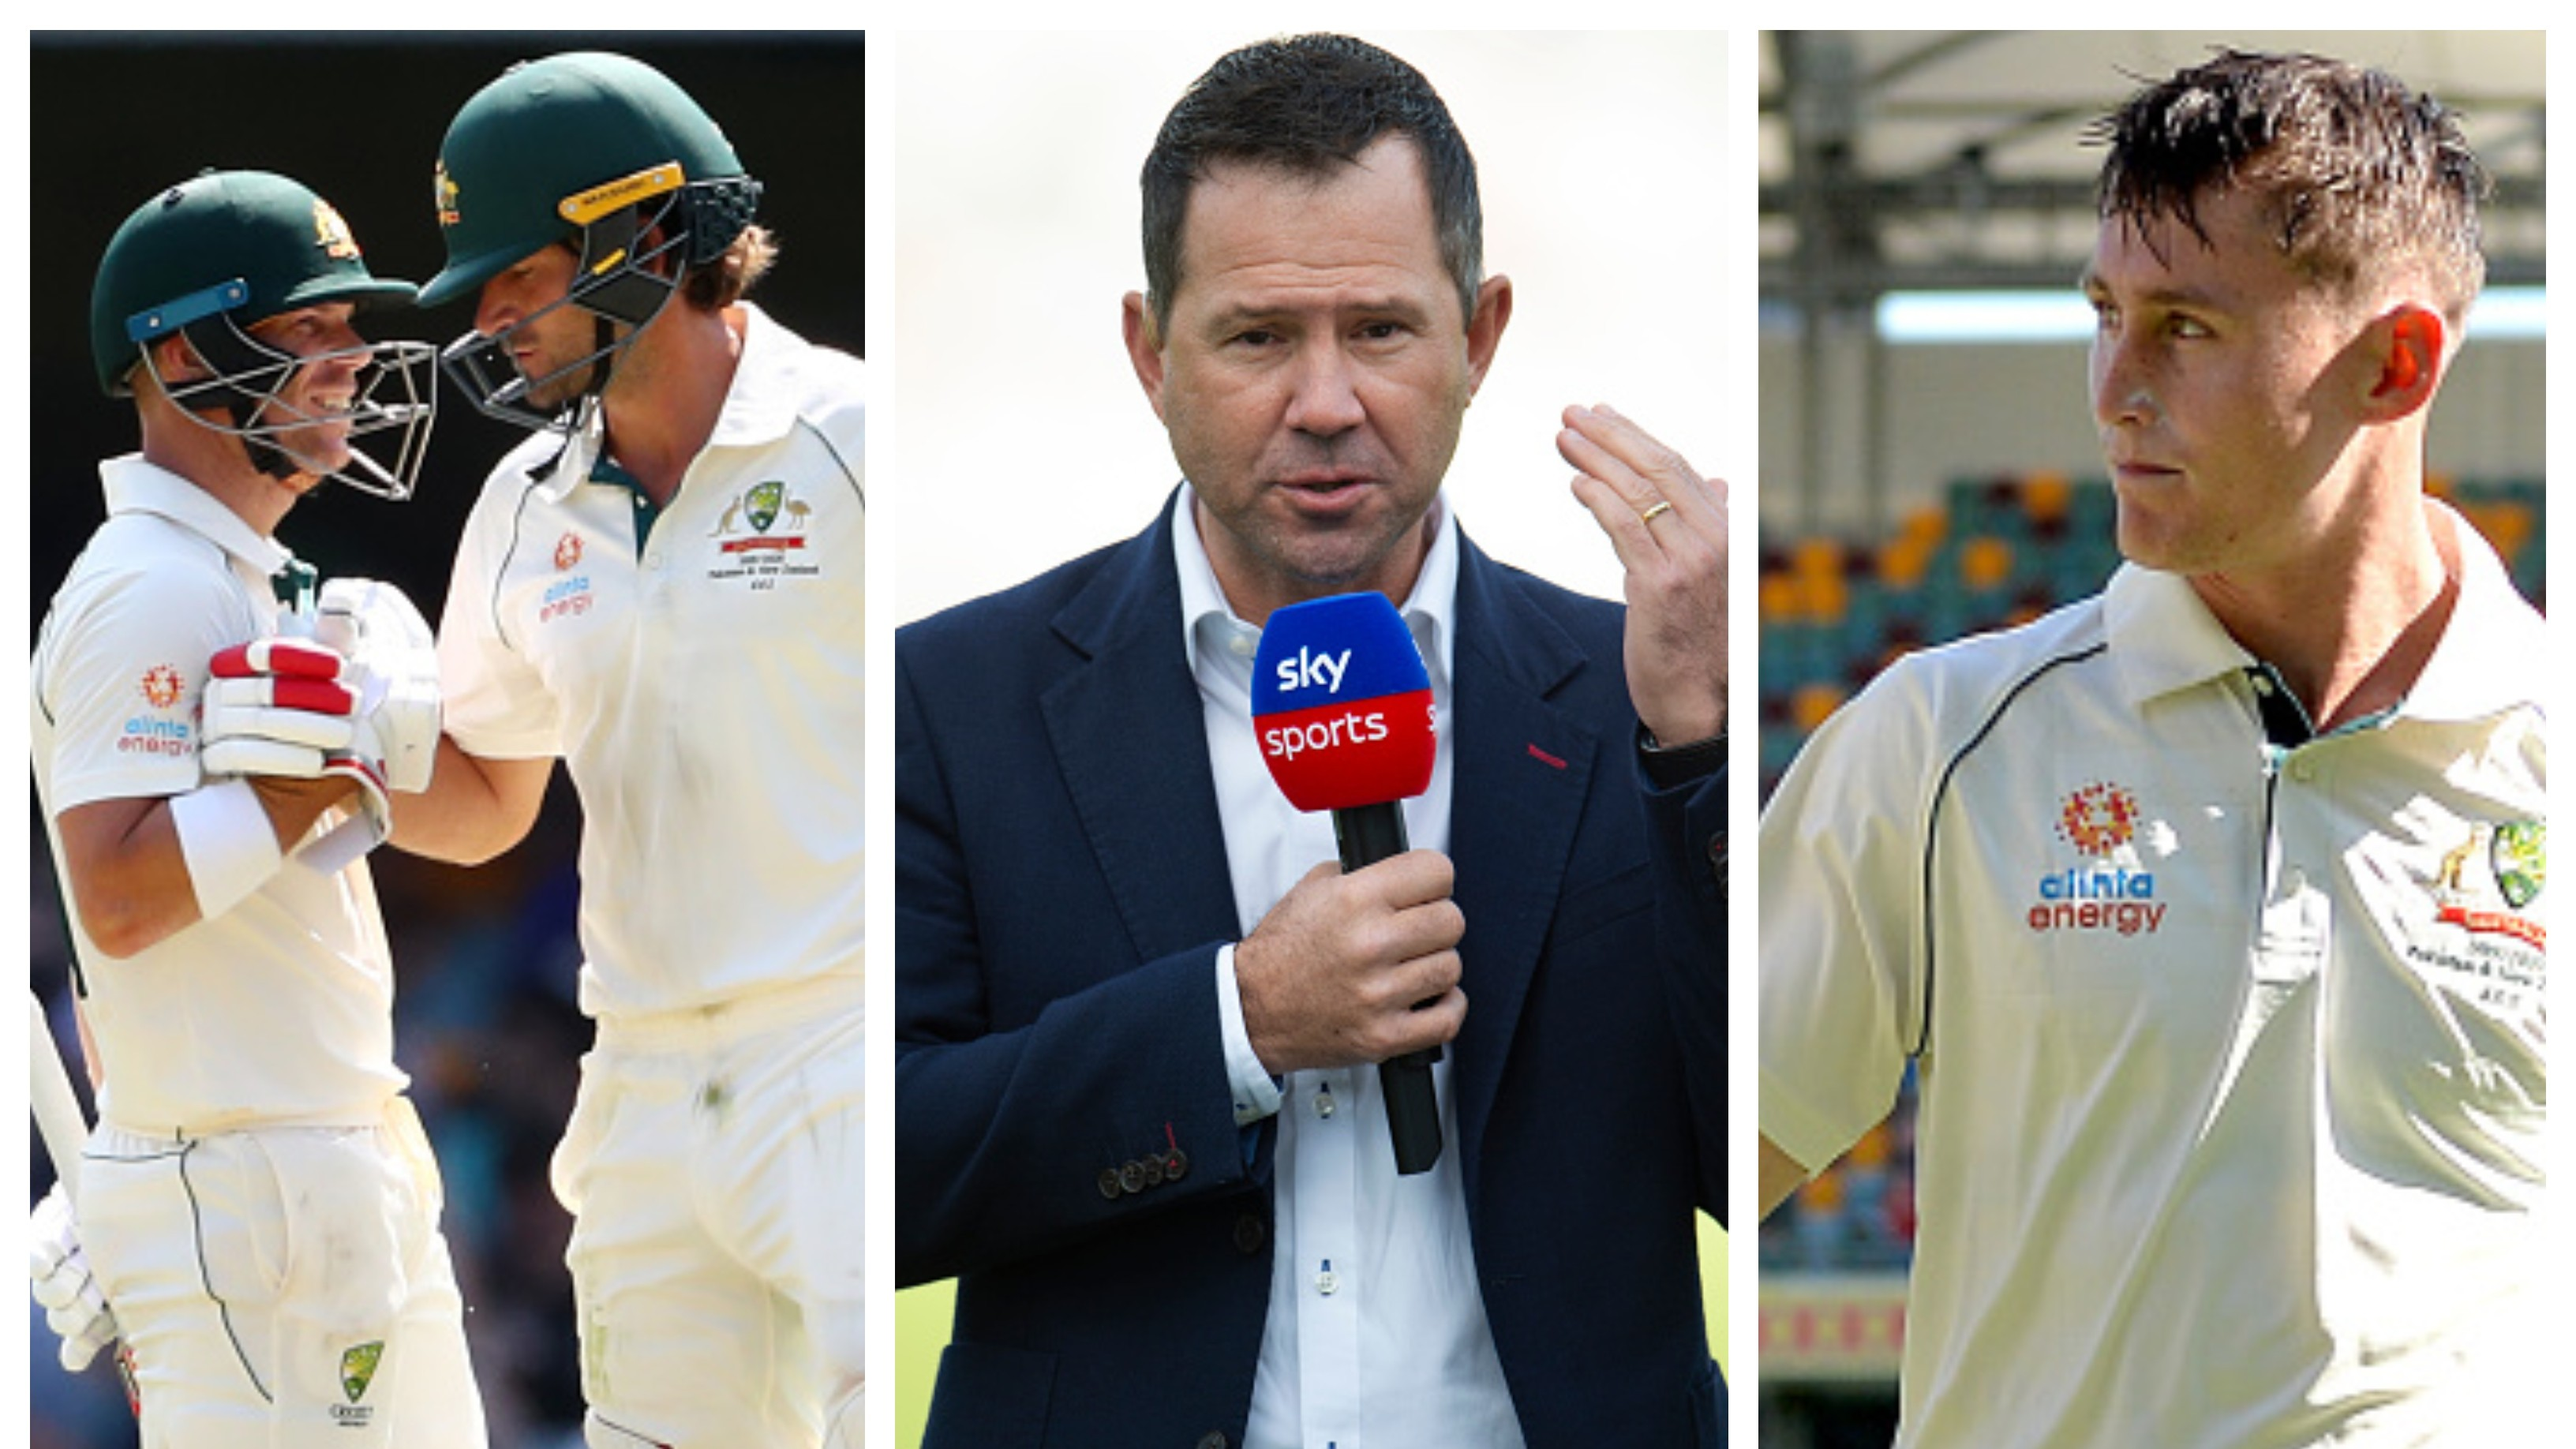 AUS v PAK 2019: Ponting happy to see top-order stability with Australia